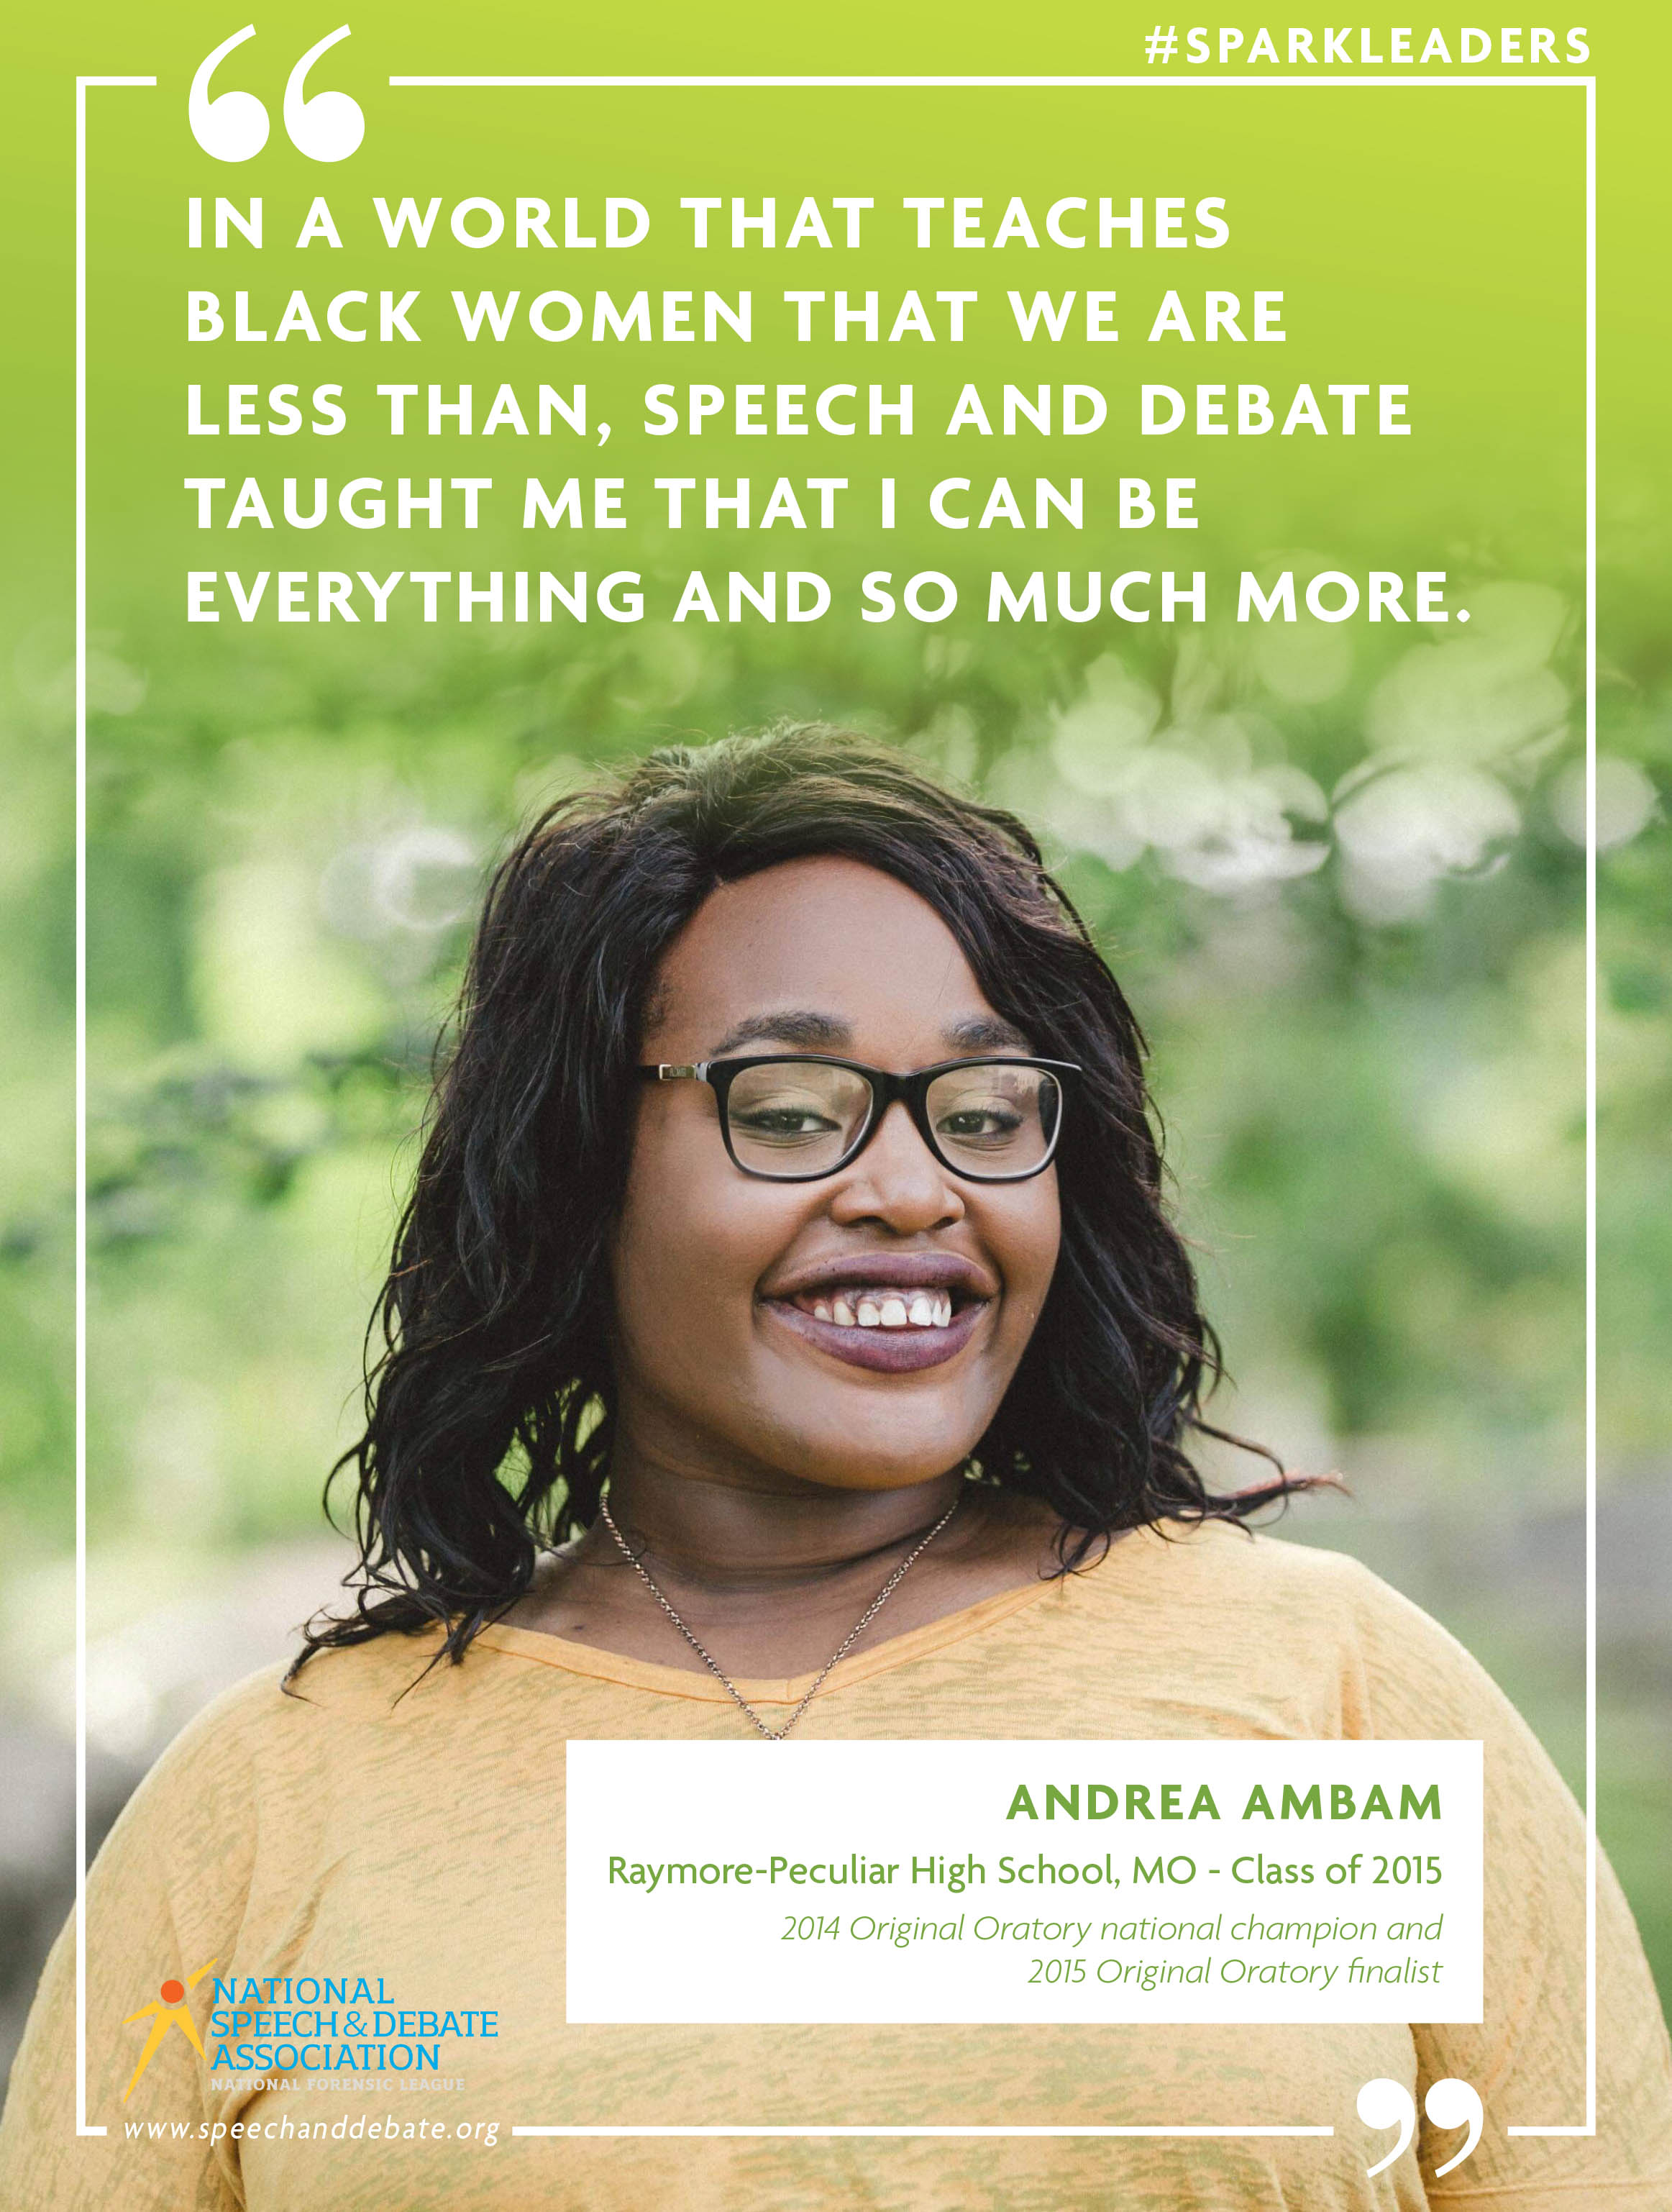 """IN A WORLD THAT TEACHES BLACK WOMEN THAT WE ARE LESS THAN, SPEECH AND DEBATE TAUGHT ME THAT I CAN BE EVERYTHING AND SO MUCH MORE."" - Andrea Ambam"